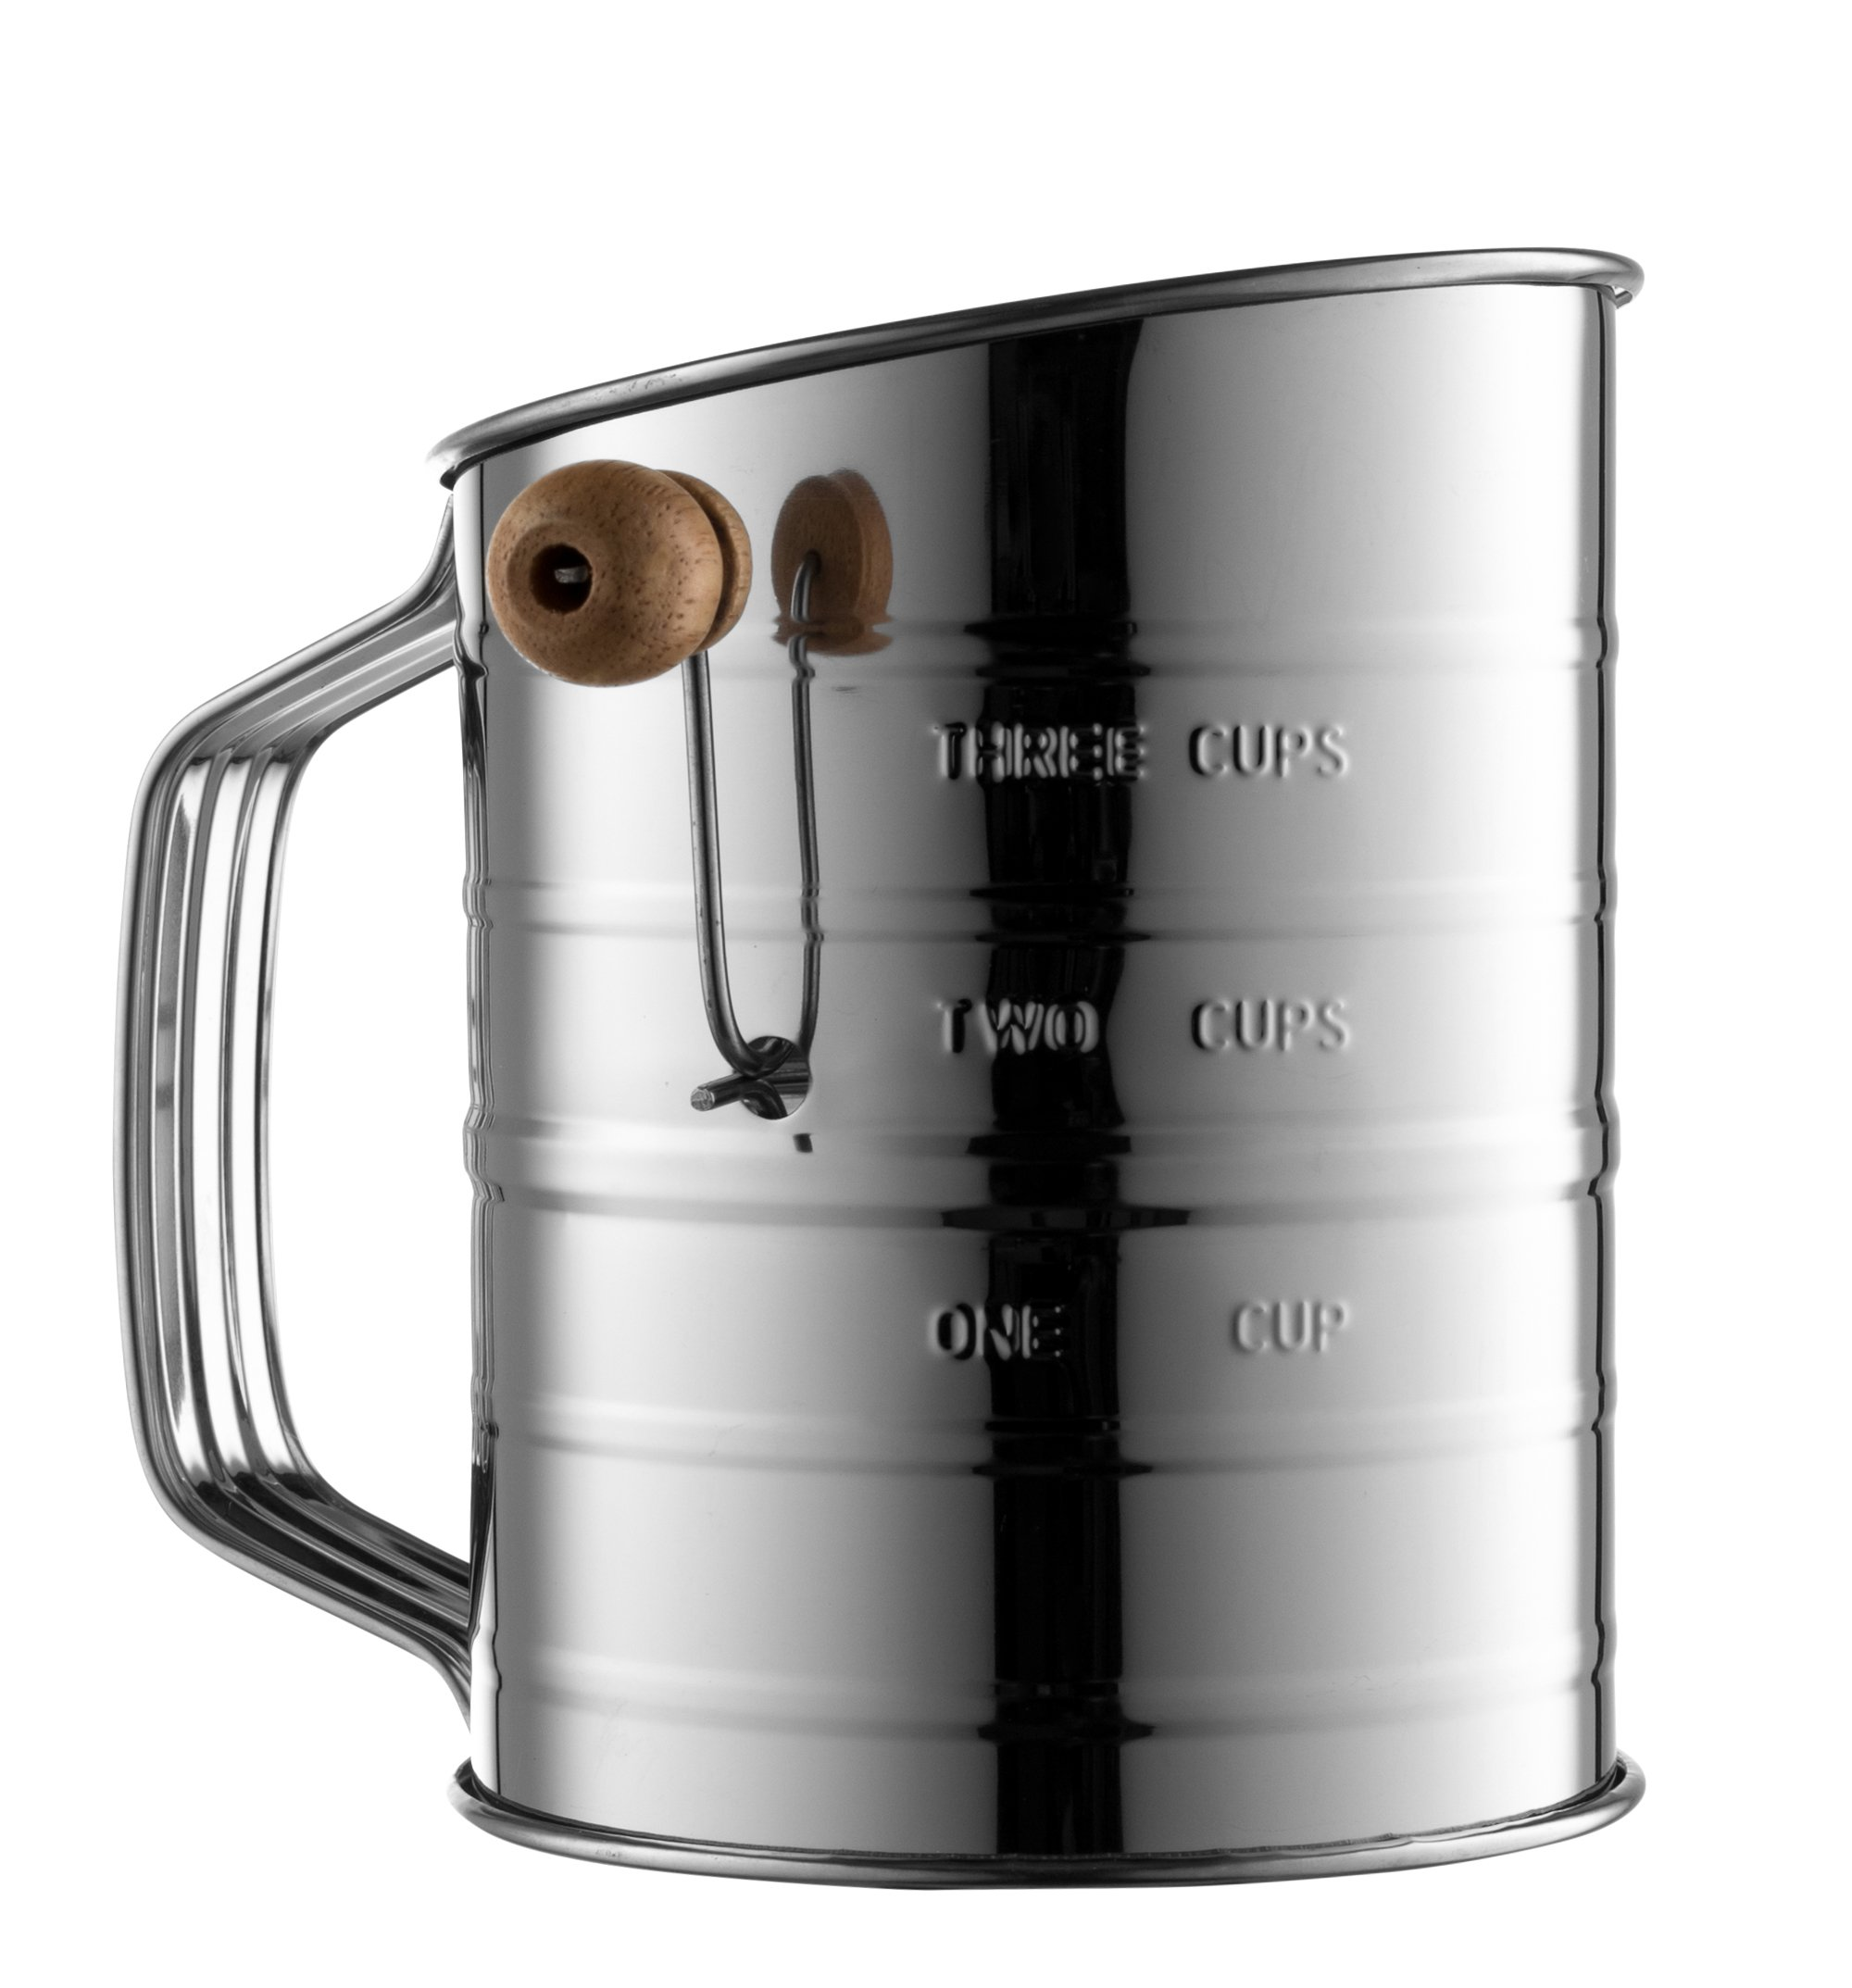 Bellemain Stainless Steel 3 Cup Flour Sifter by Epica (Image #1)